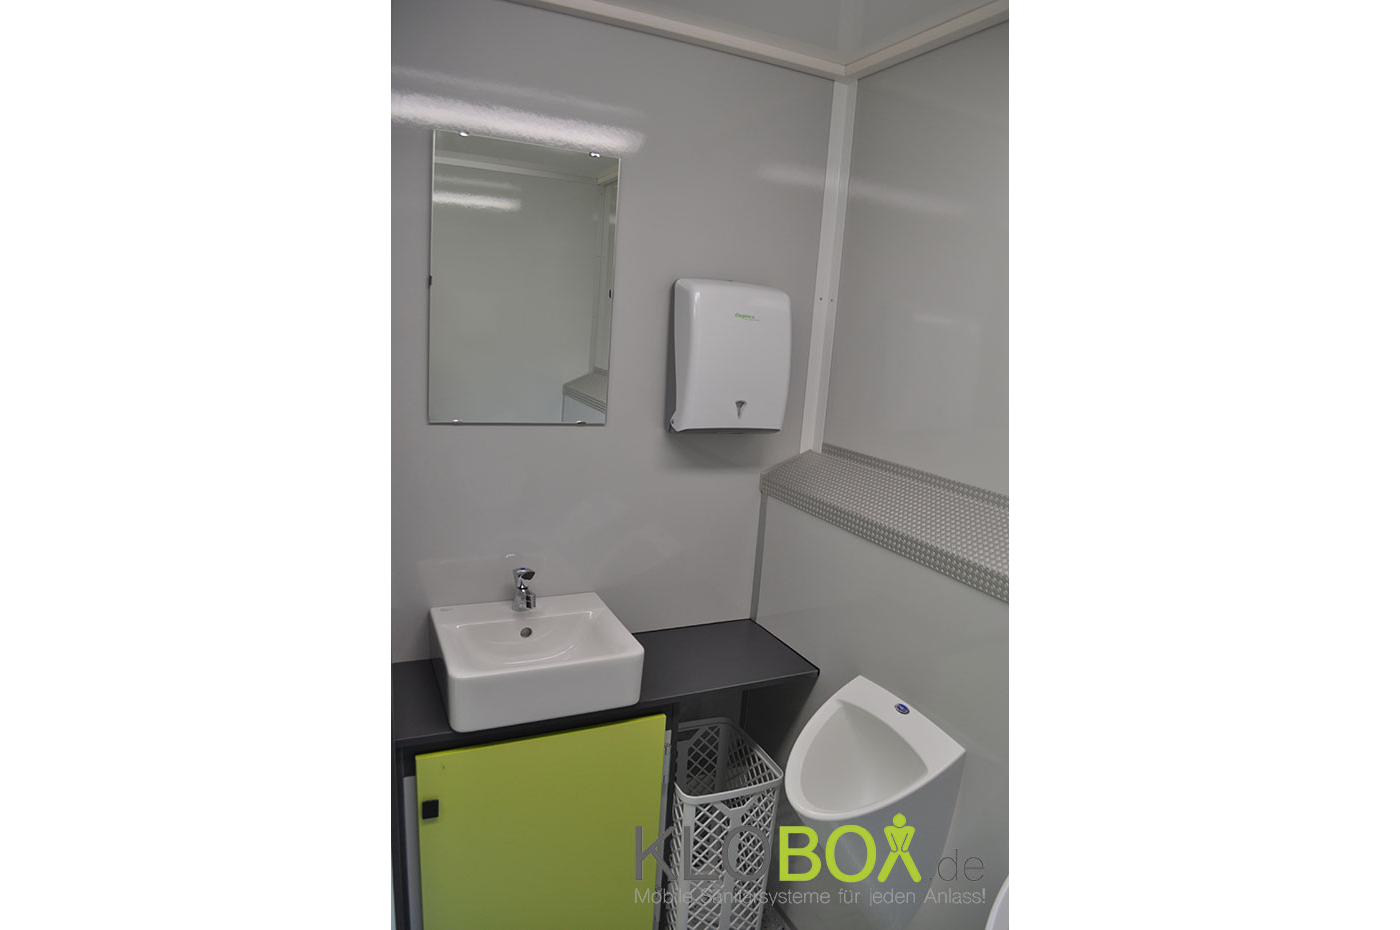 Toilettenwagen - klobox.de #14